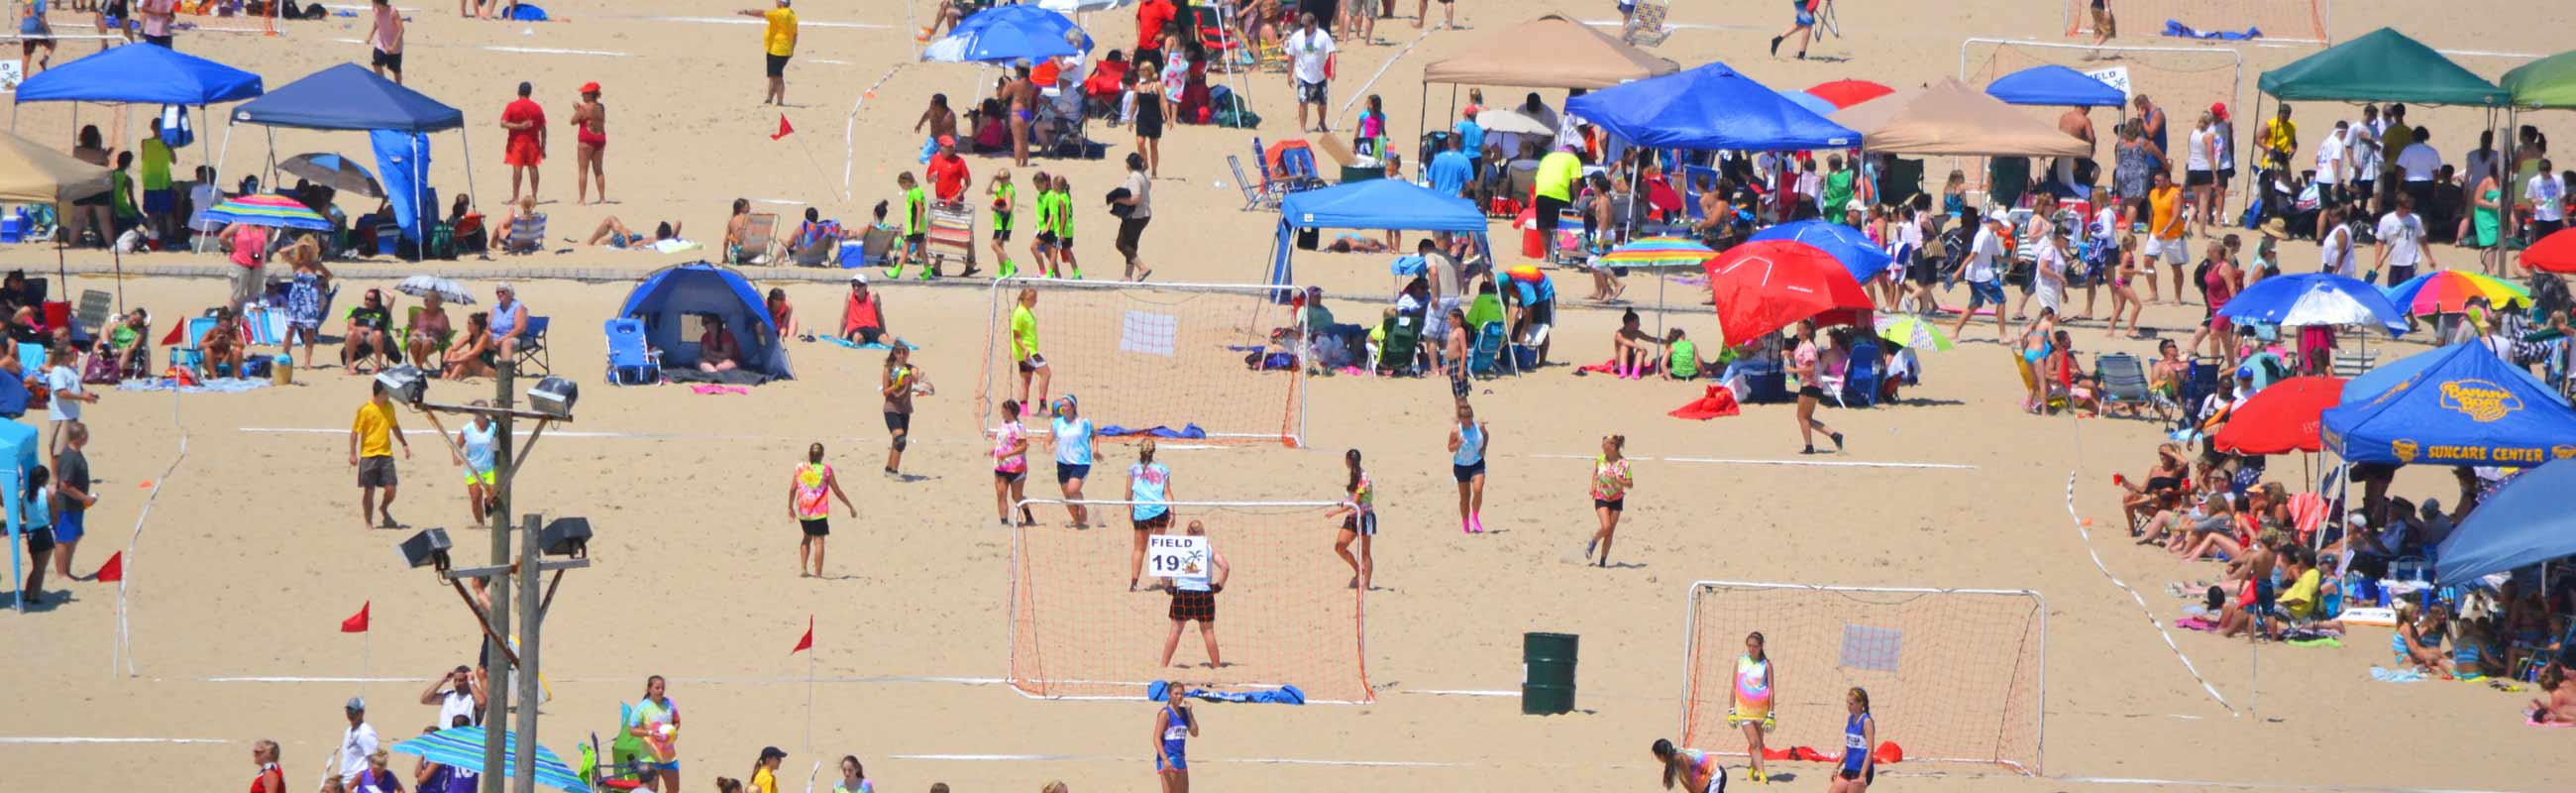 beach soccer tournament